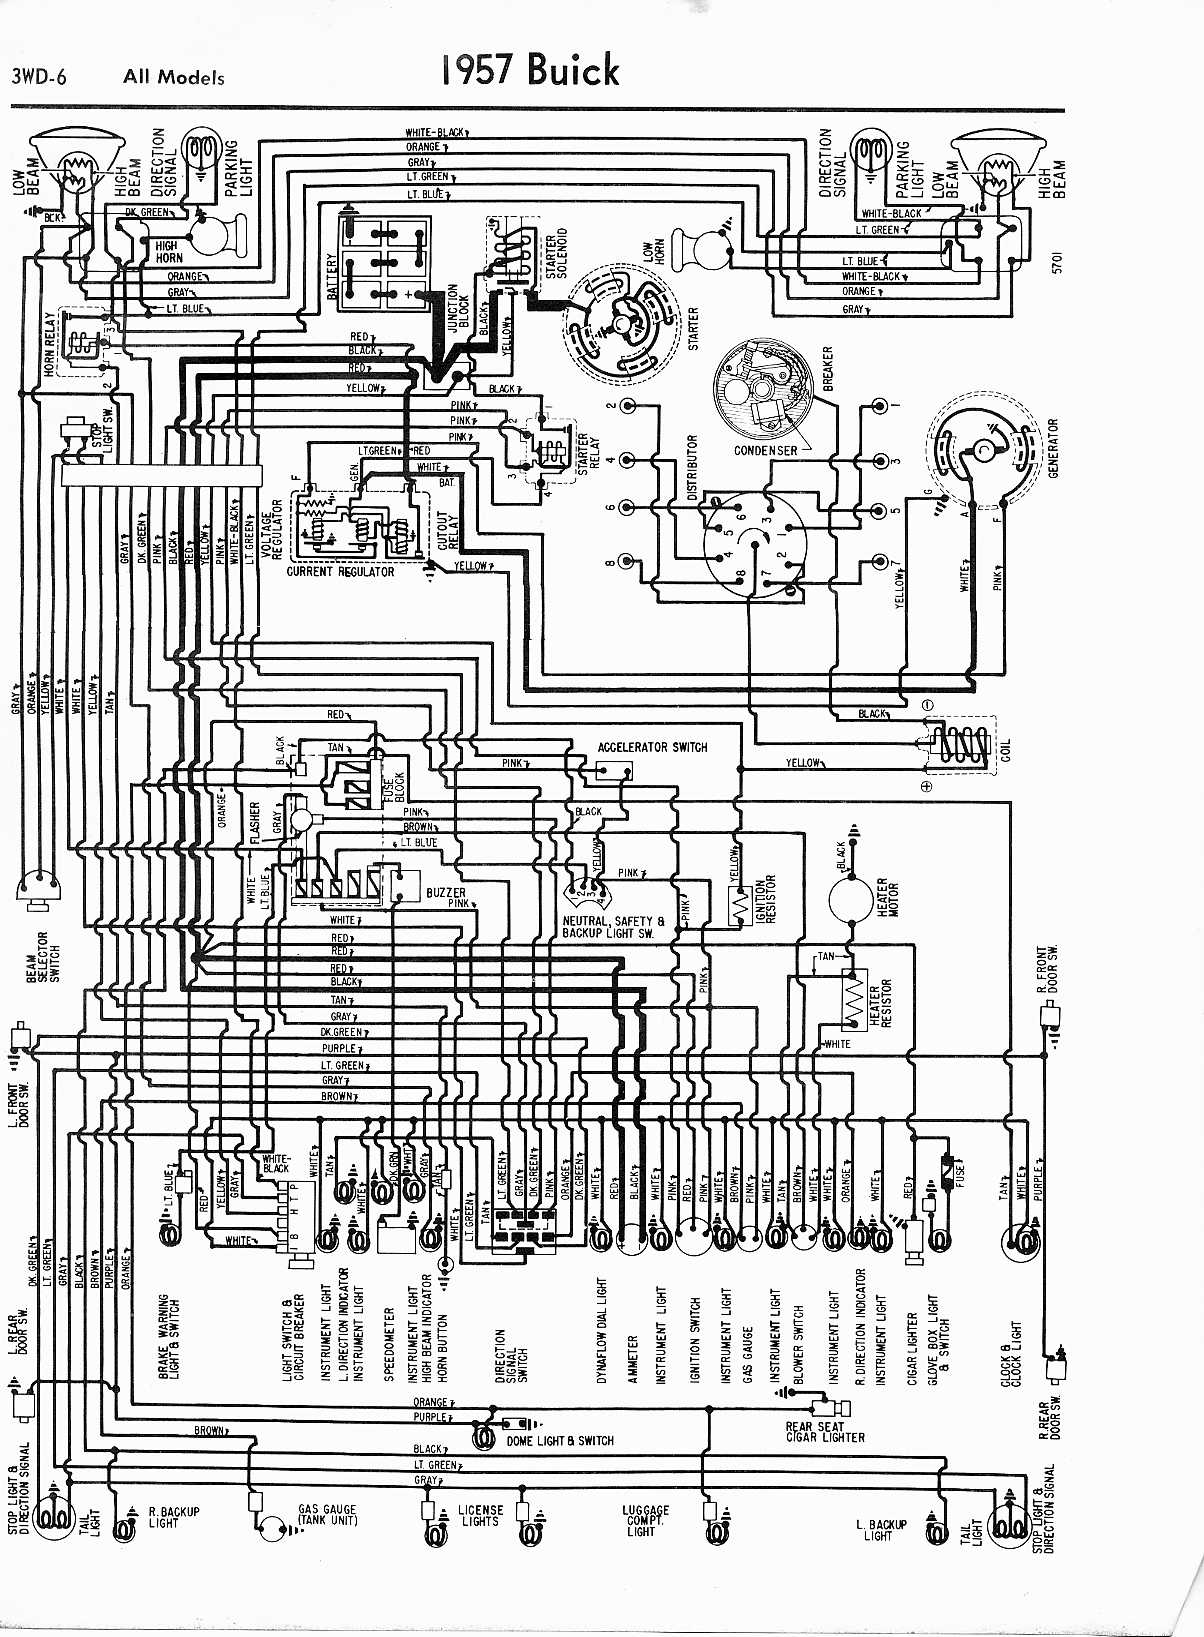 1967 Buick Skylark Fuse Box Diagram Archive Of Automotive Wiring 1986 Pontiac Trans Am 1971 Riviera Schematics Rh Thyl Co Uk